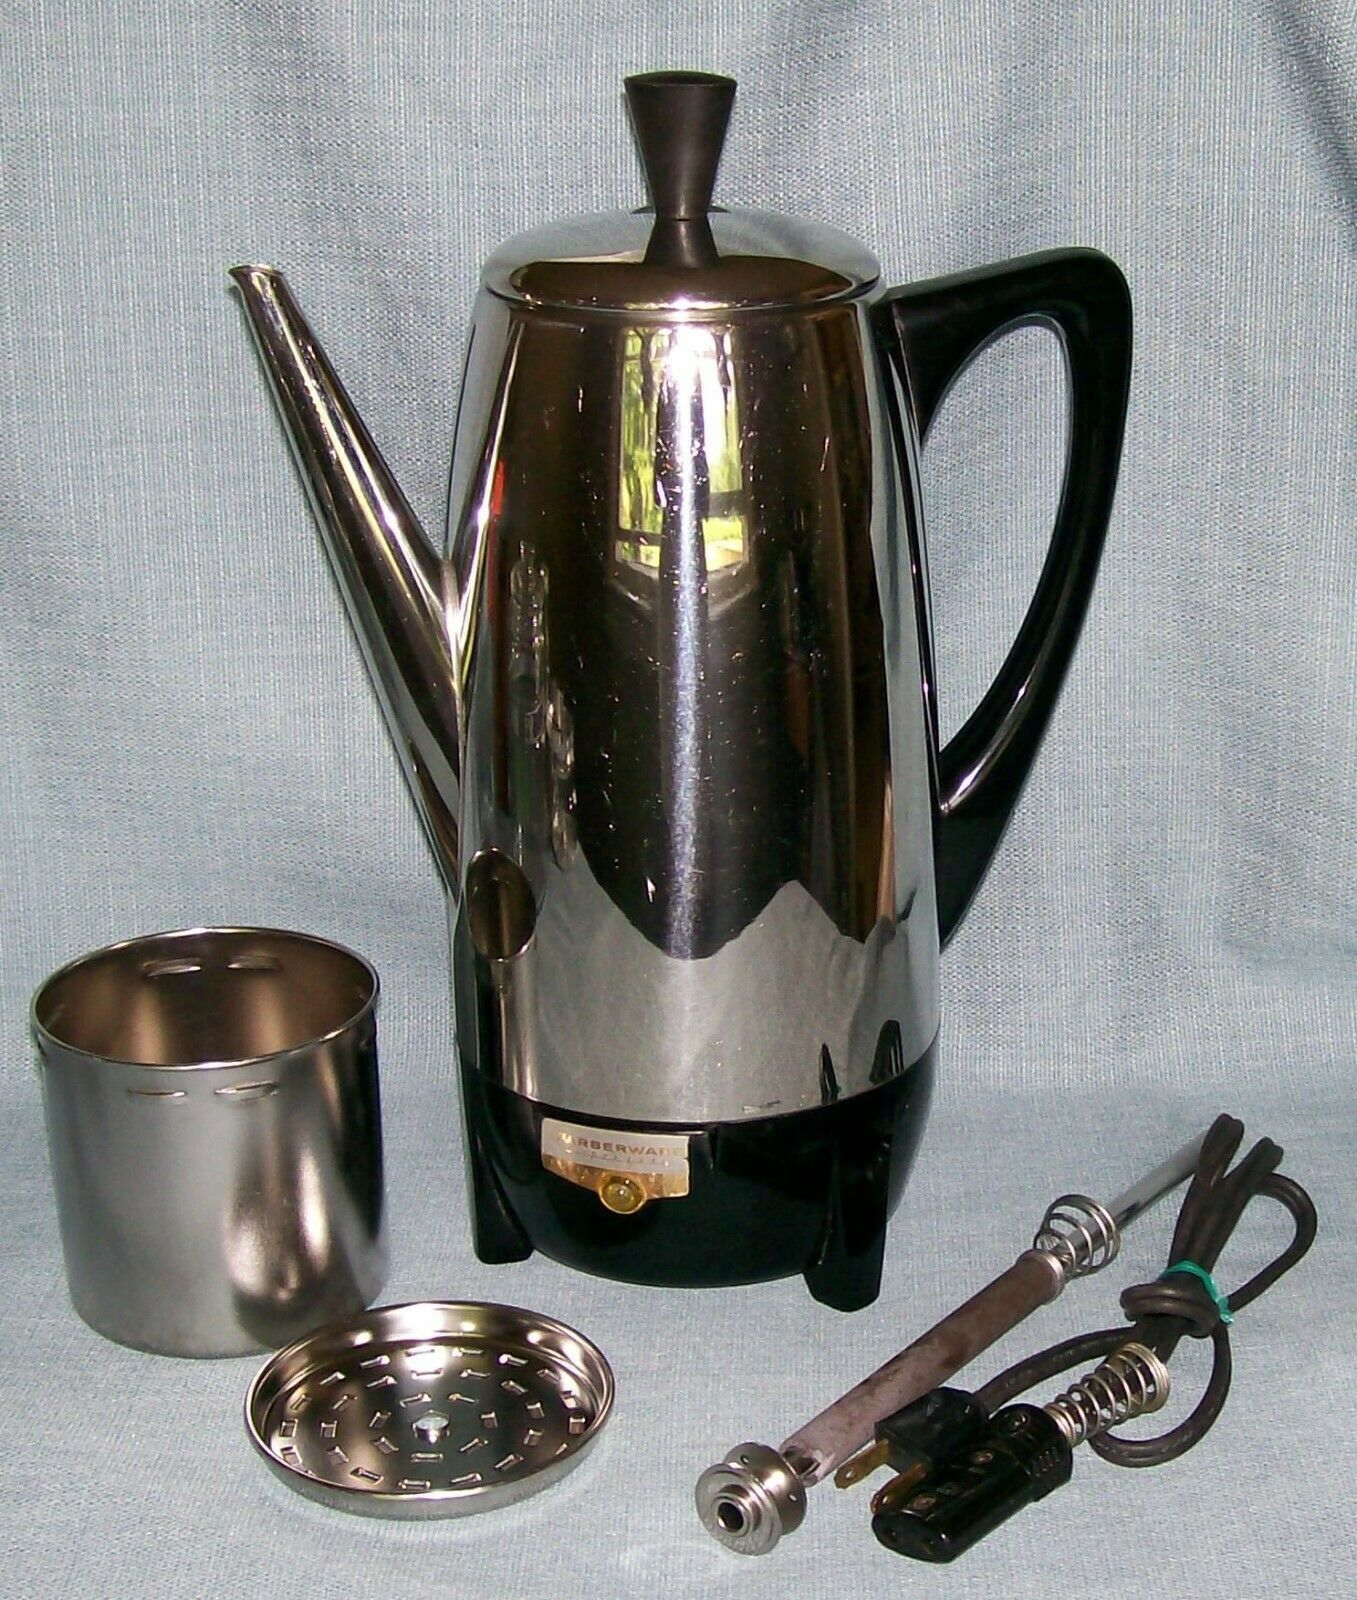 Vintage Farberware Superfast 12 Cup Percolator Coffee Pot 122 Automatic New York